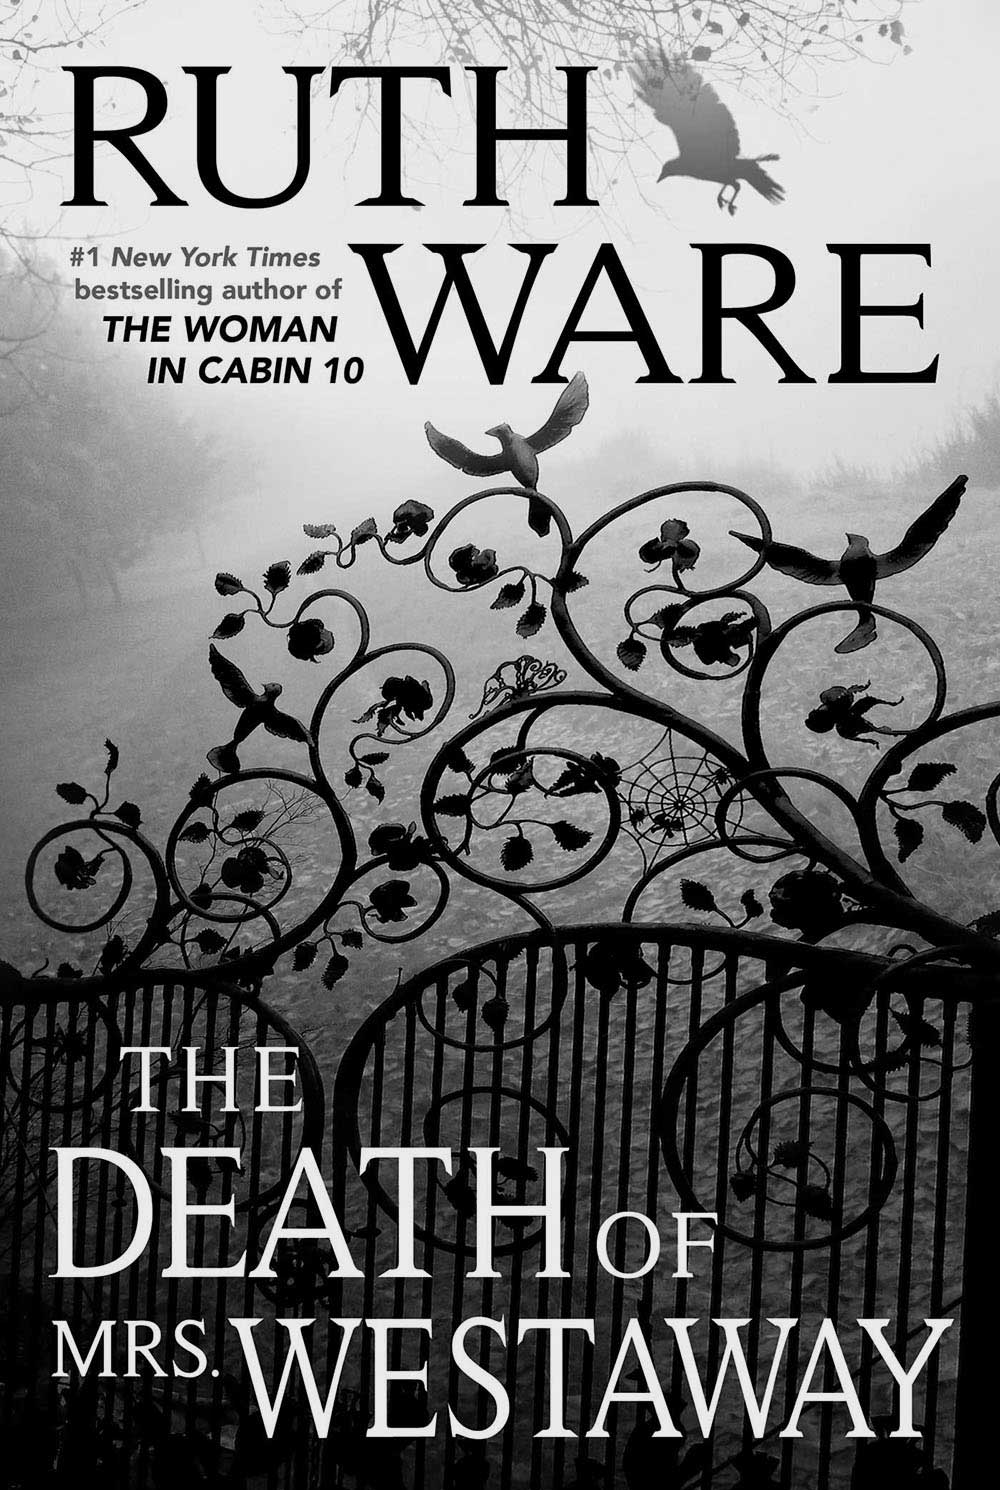 02-The-Death-of-Mrs.-Westaway